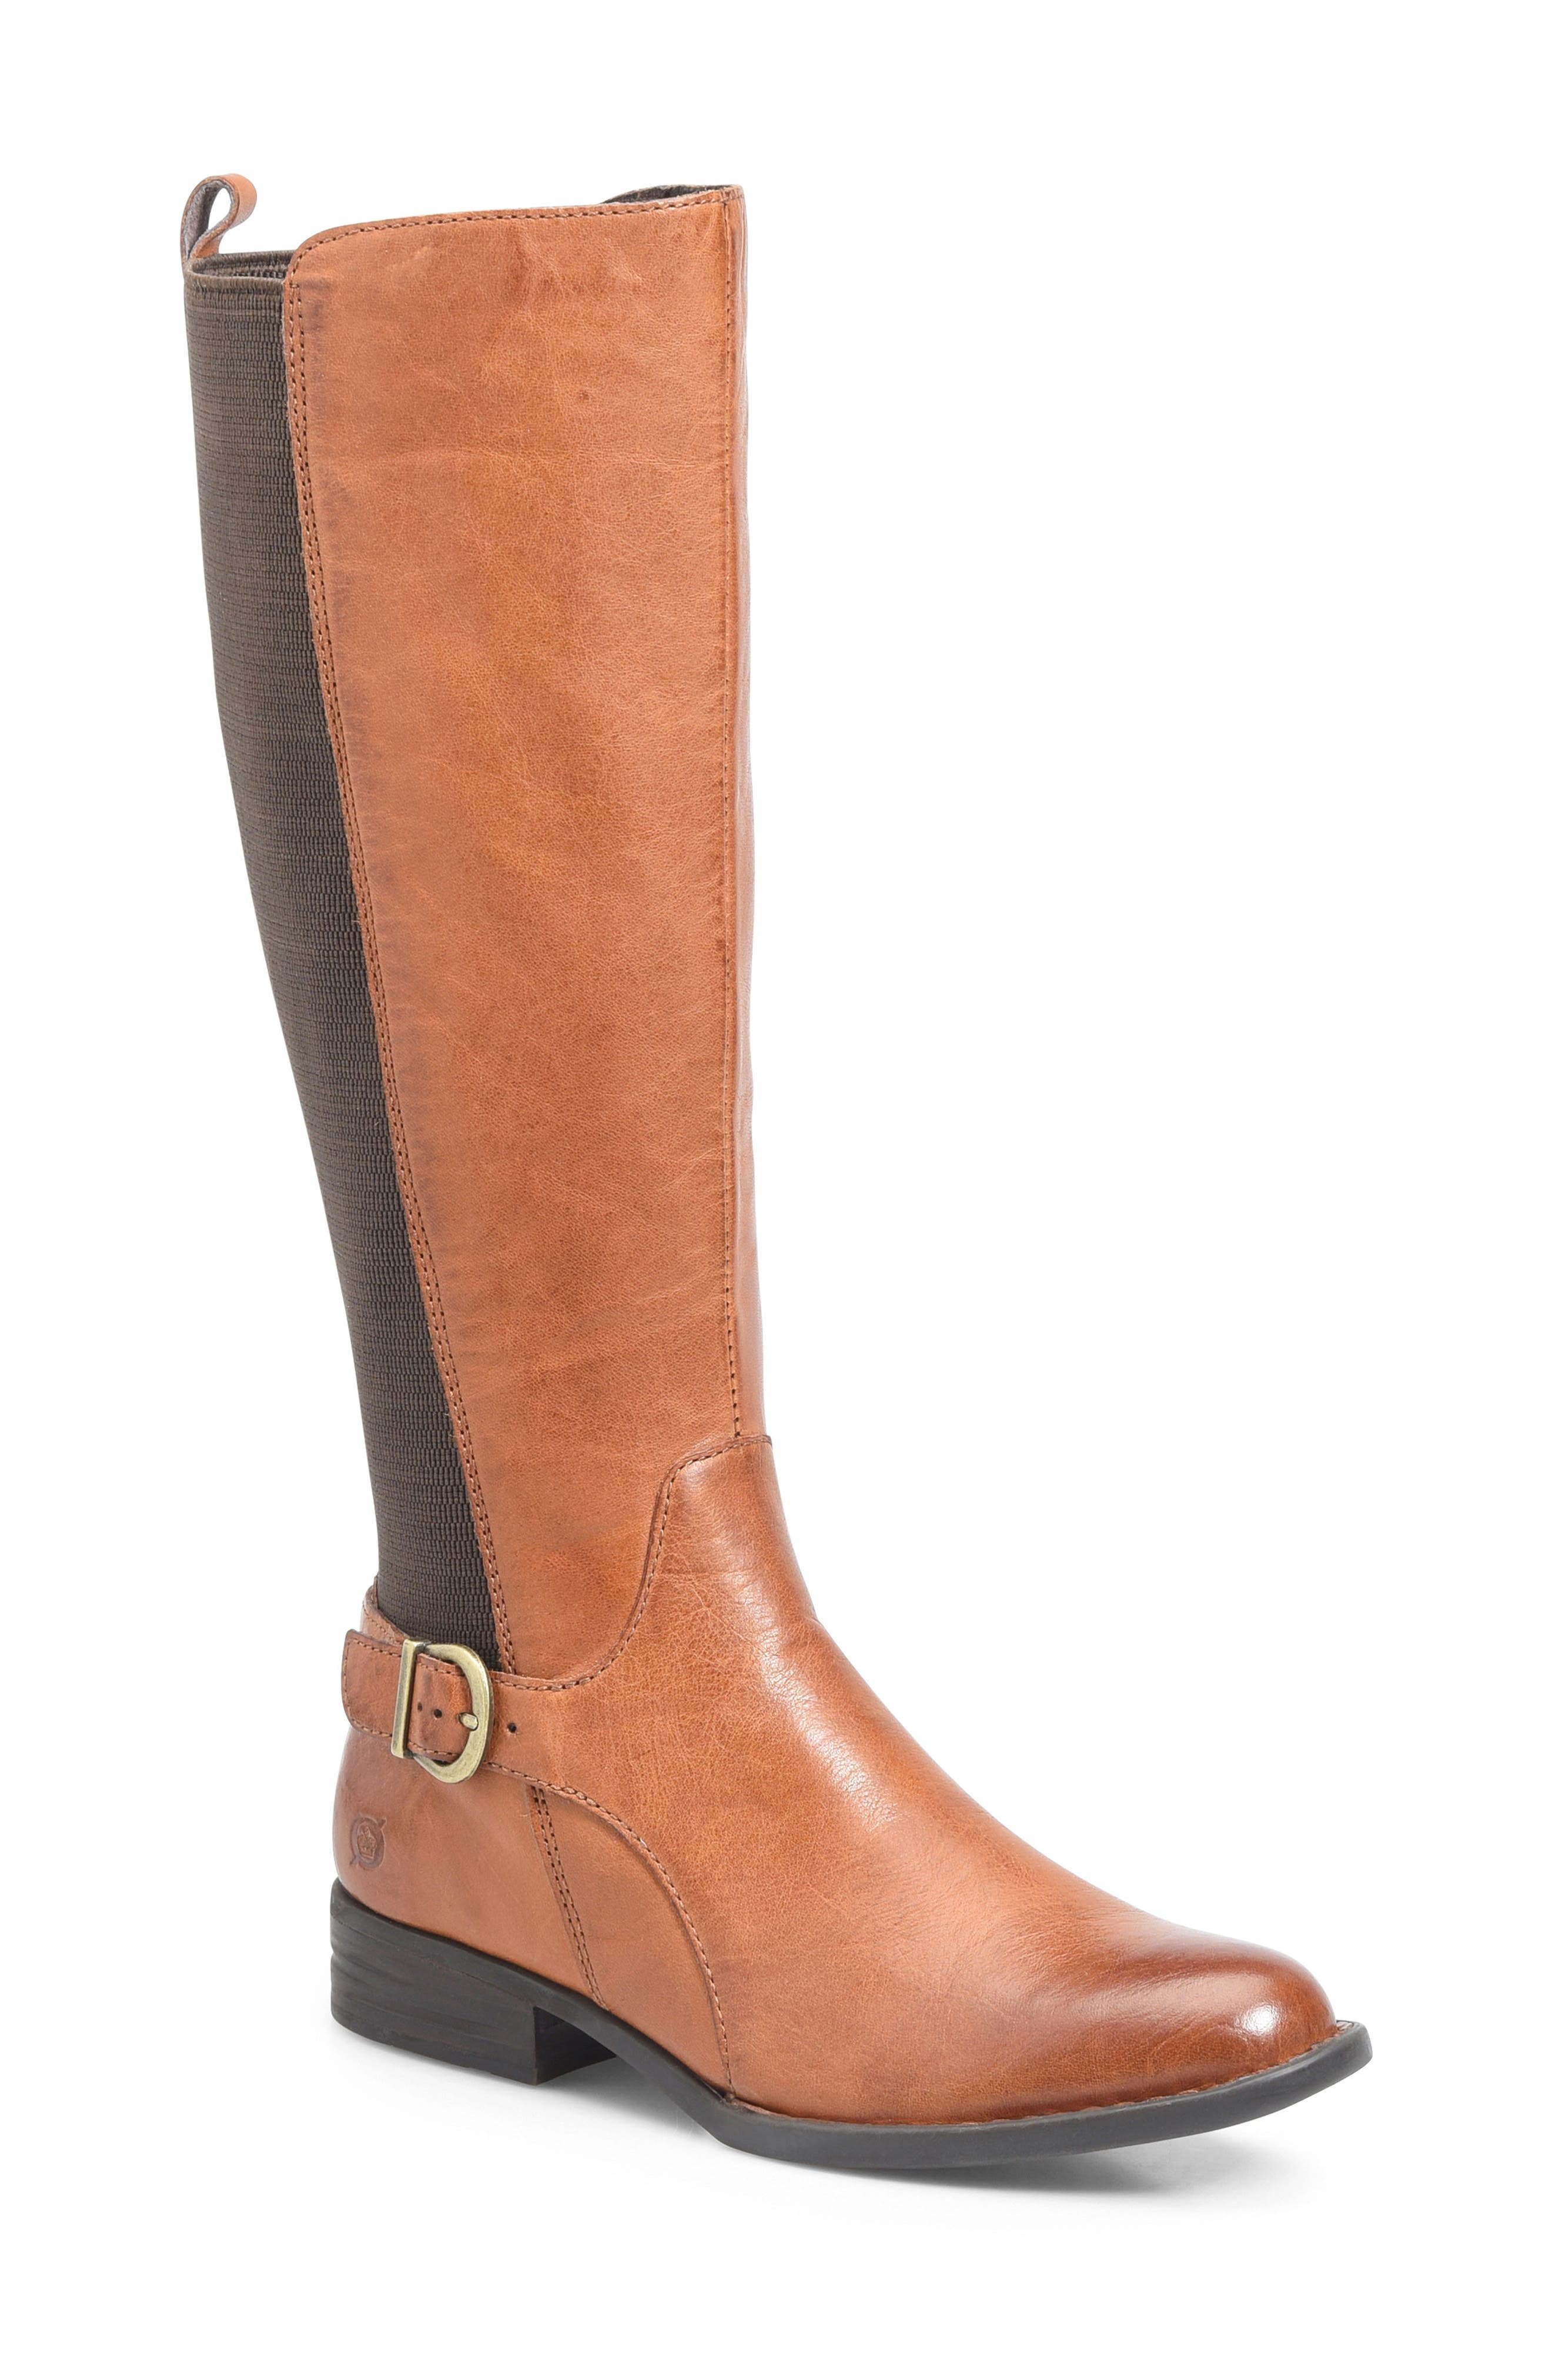 Campbell Knee High Elastic Back Boot,                             Main thumbnail 1, color,                             Tan Leather